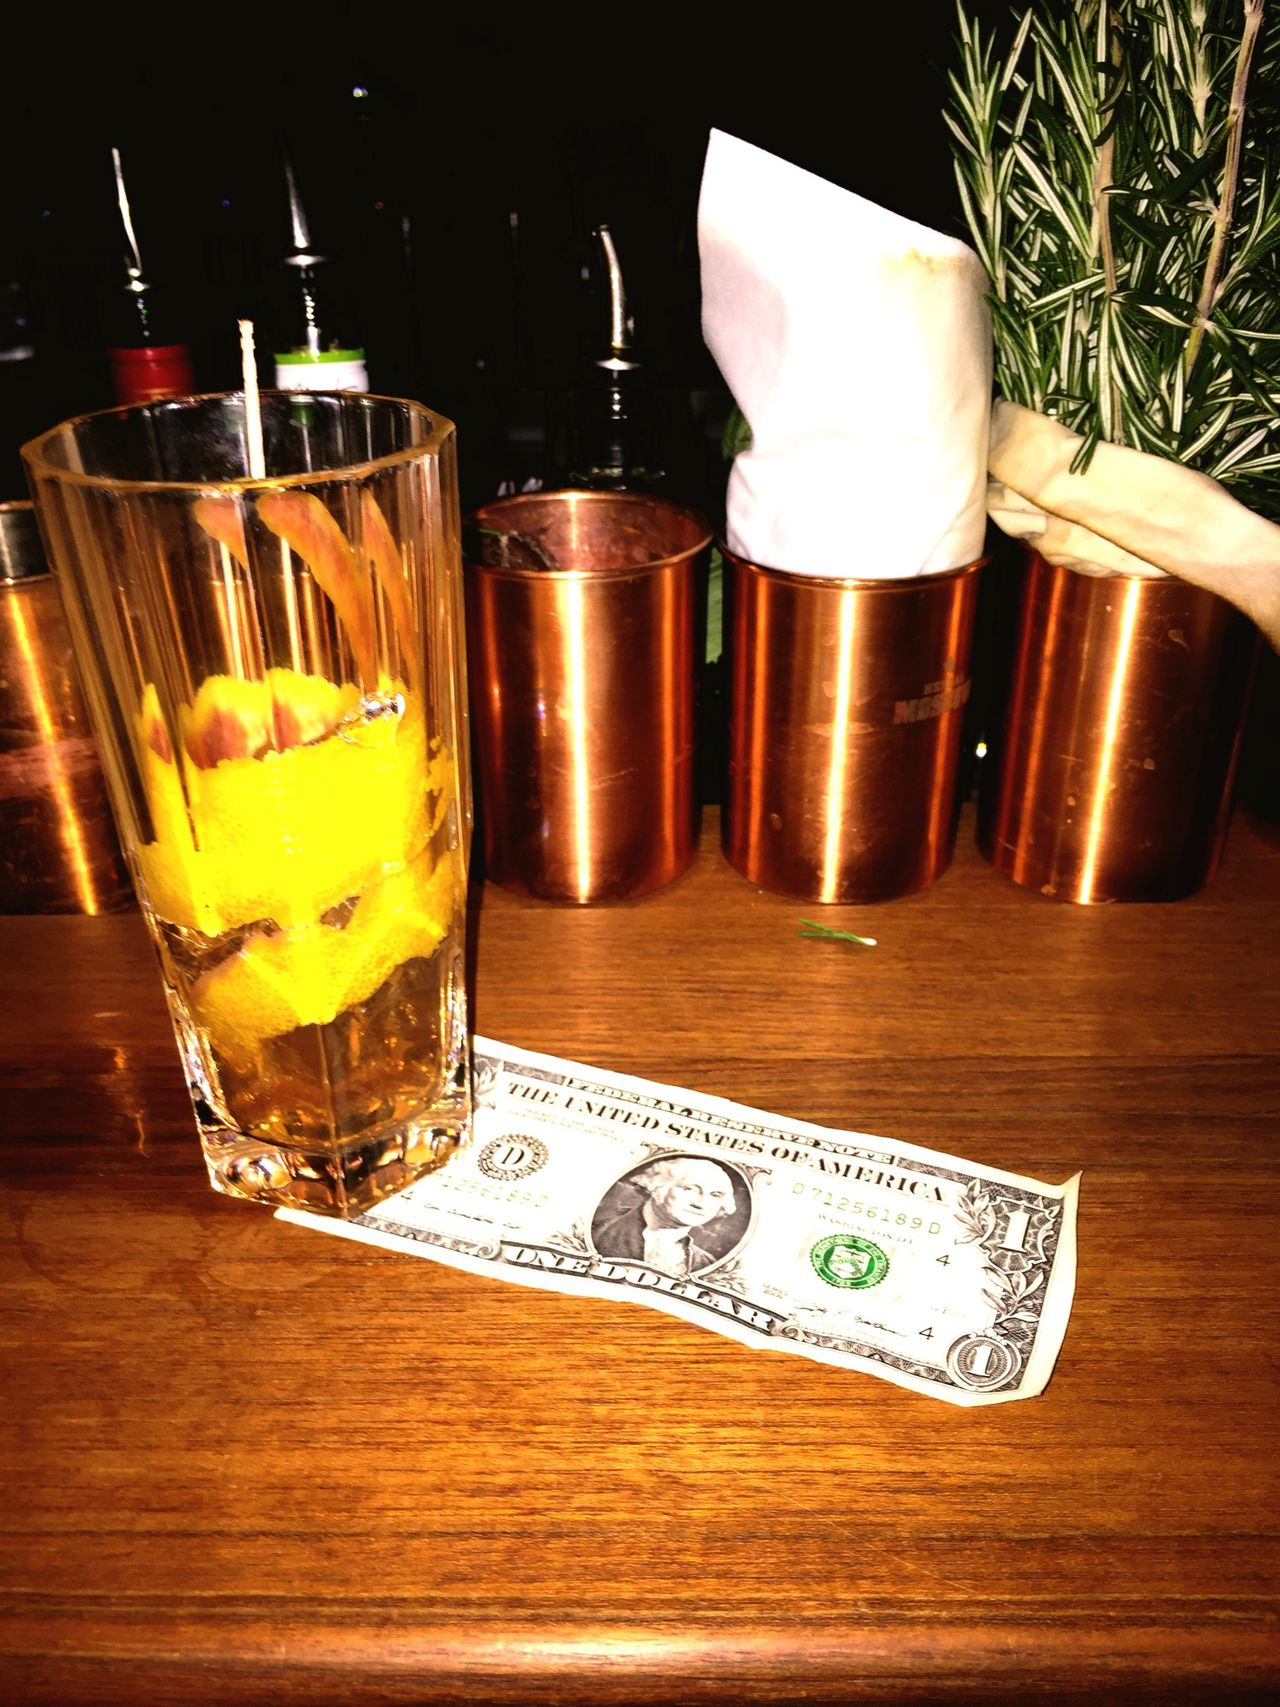 Hanging Out On The Run Enjoying Life Night Out Drinks Cocktails